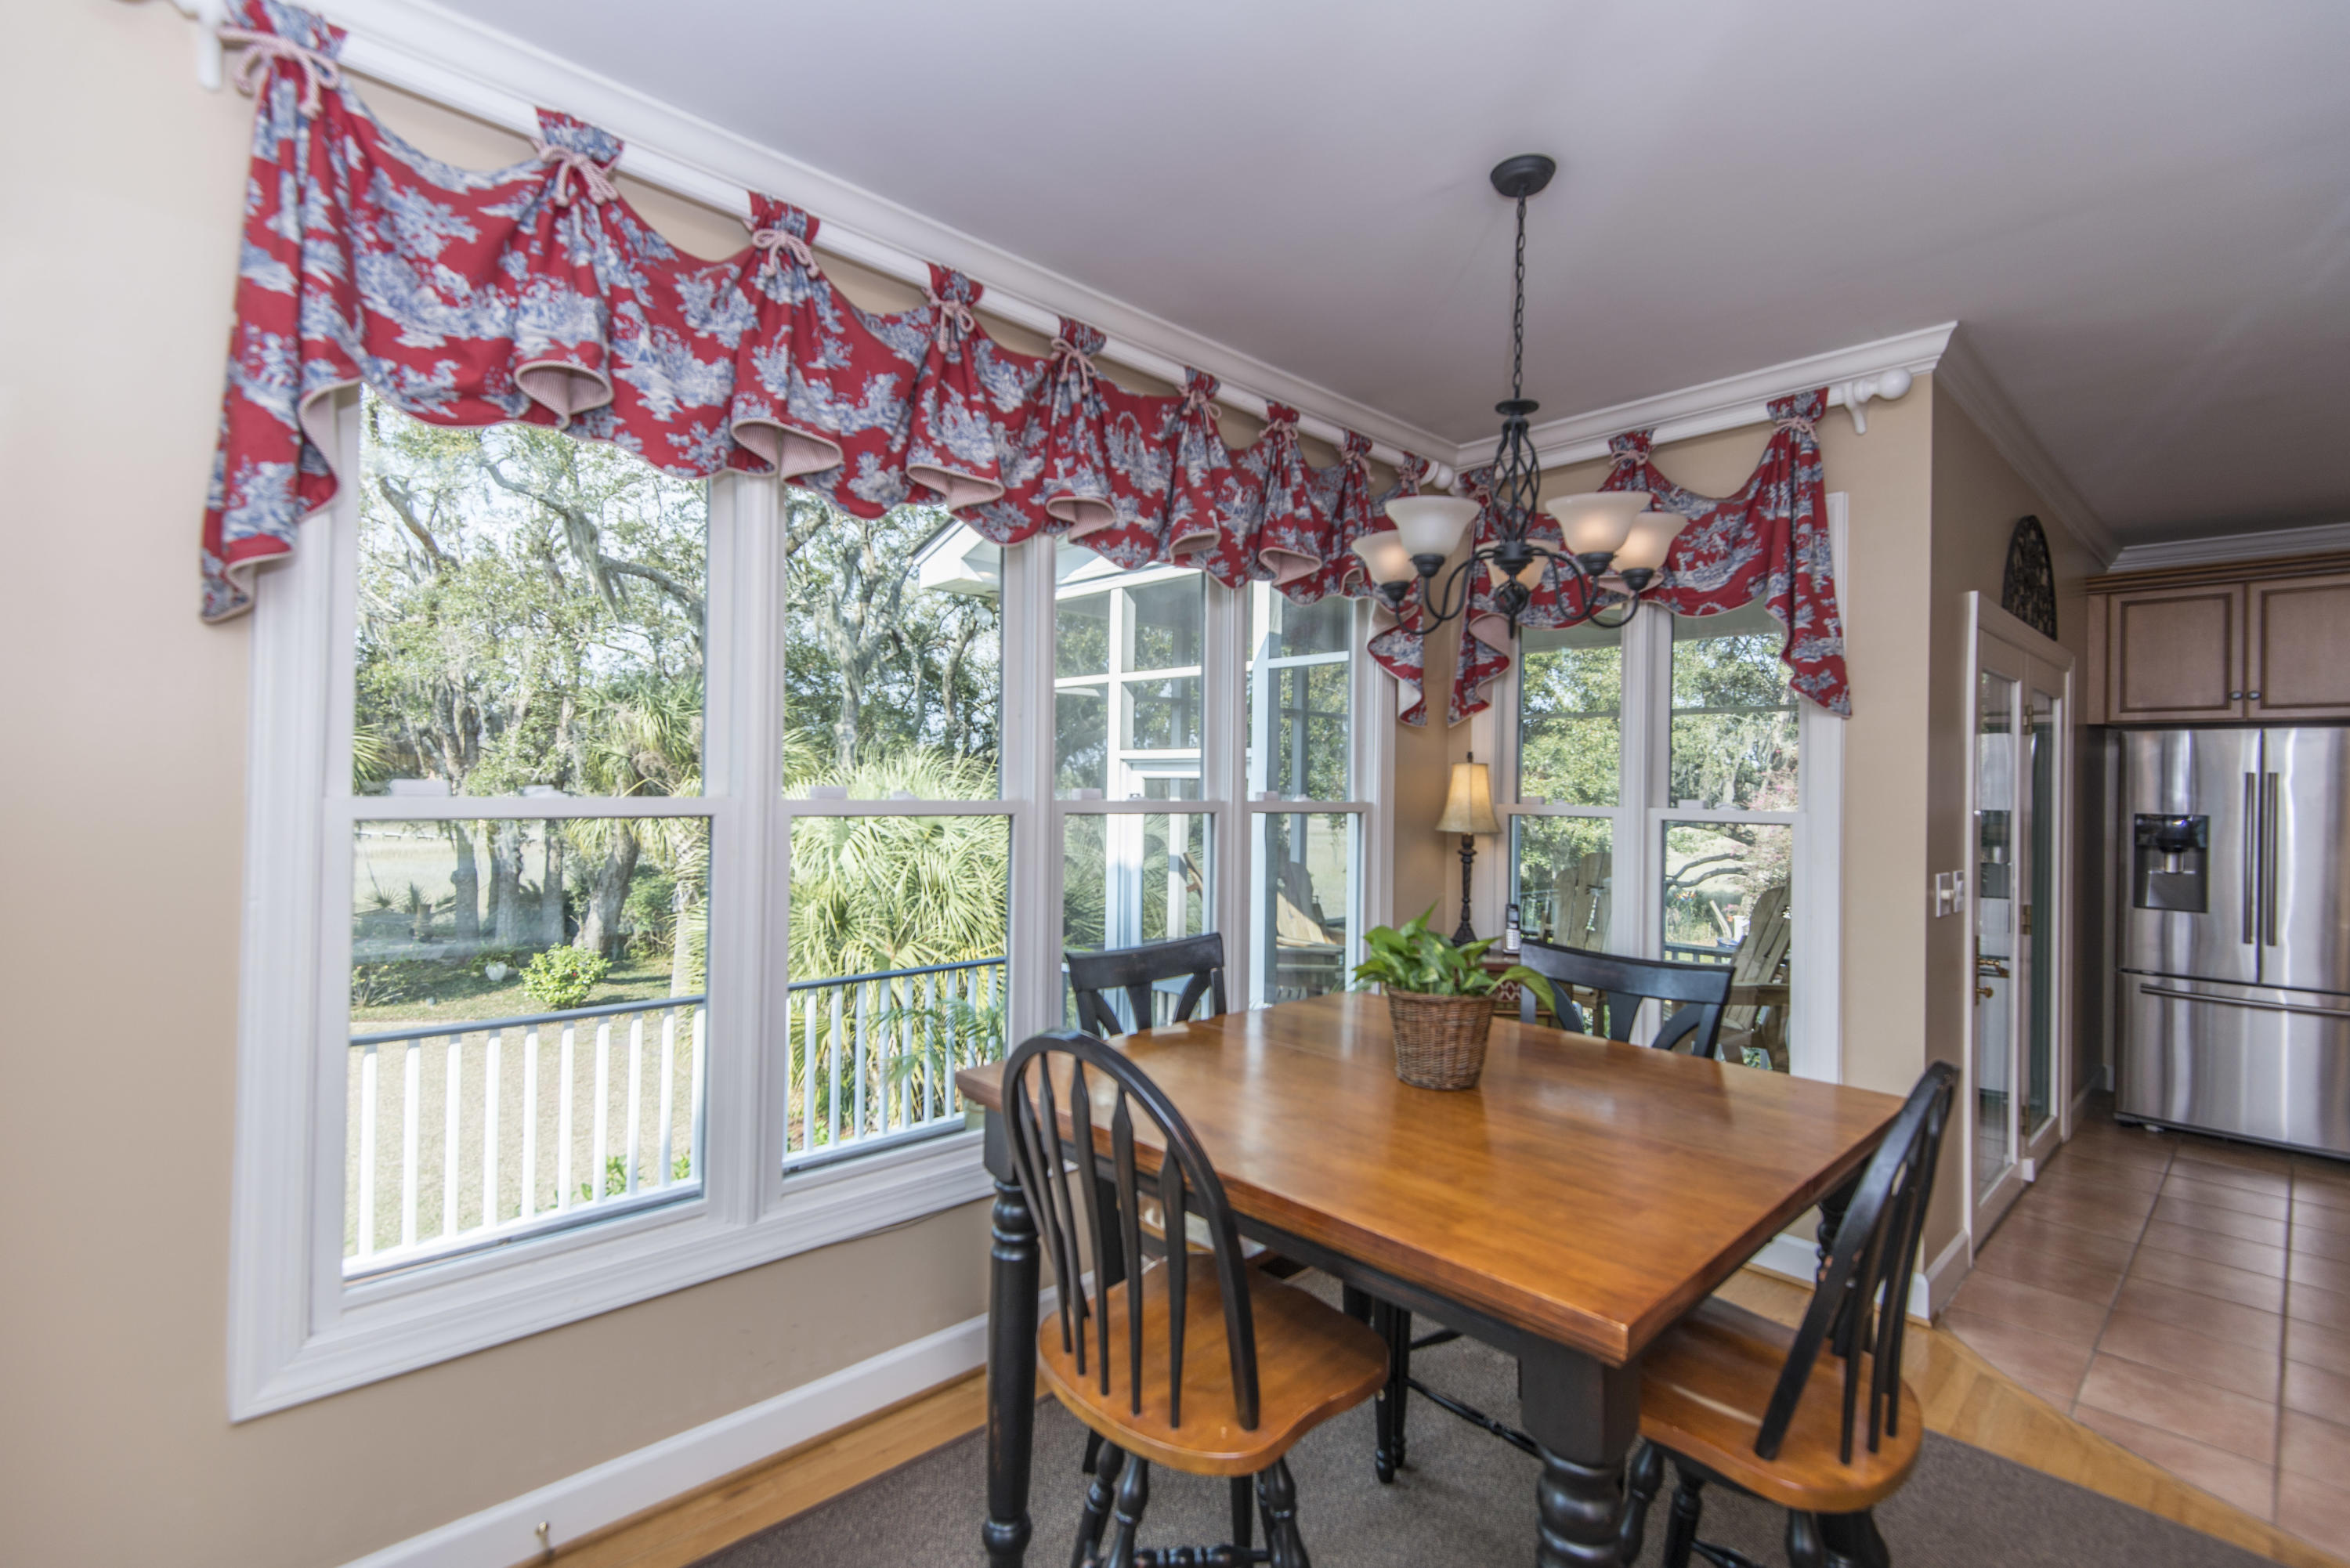 Stiles Point Plantation Homes For Sale - 906 Kushiwah Creek, Charleston, SC - 16